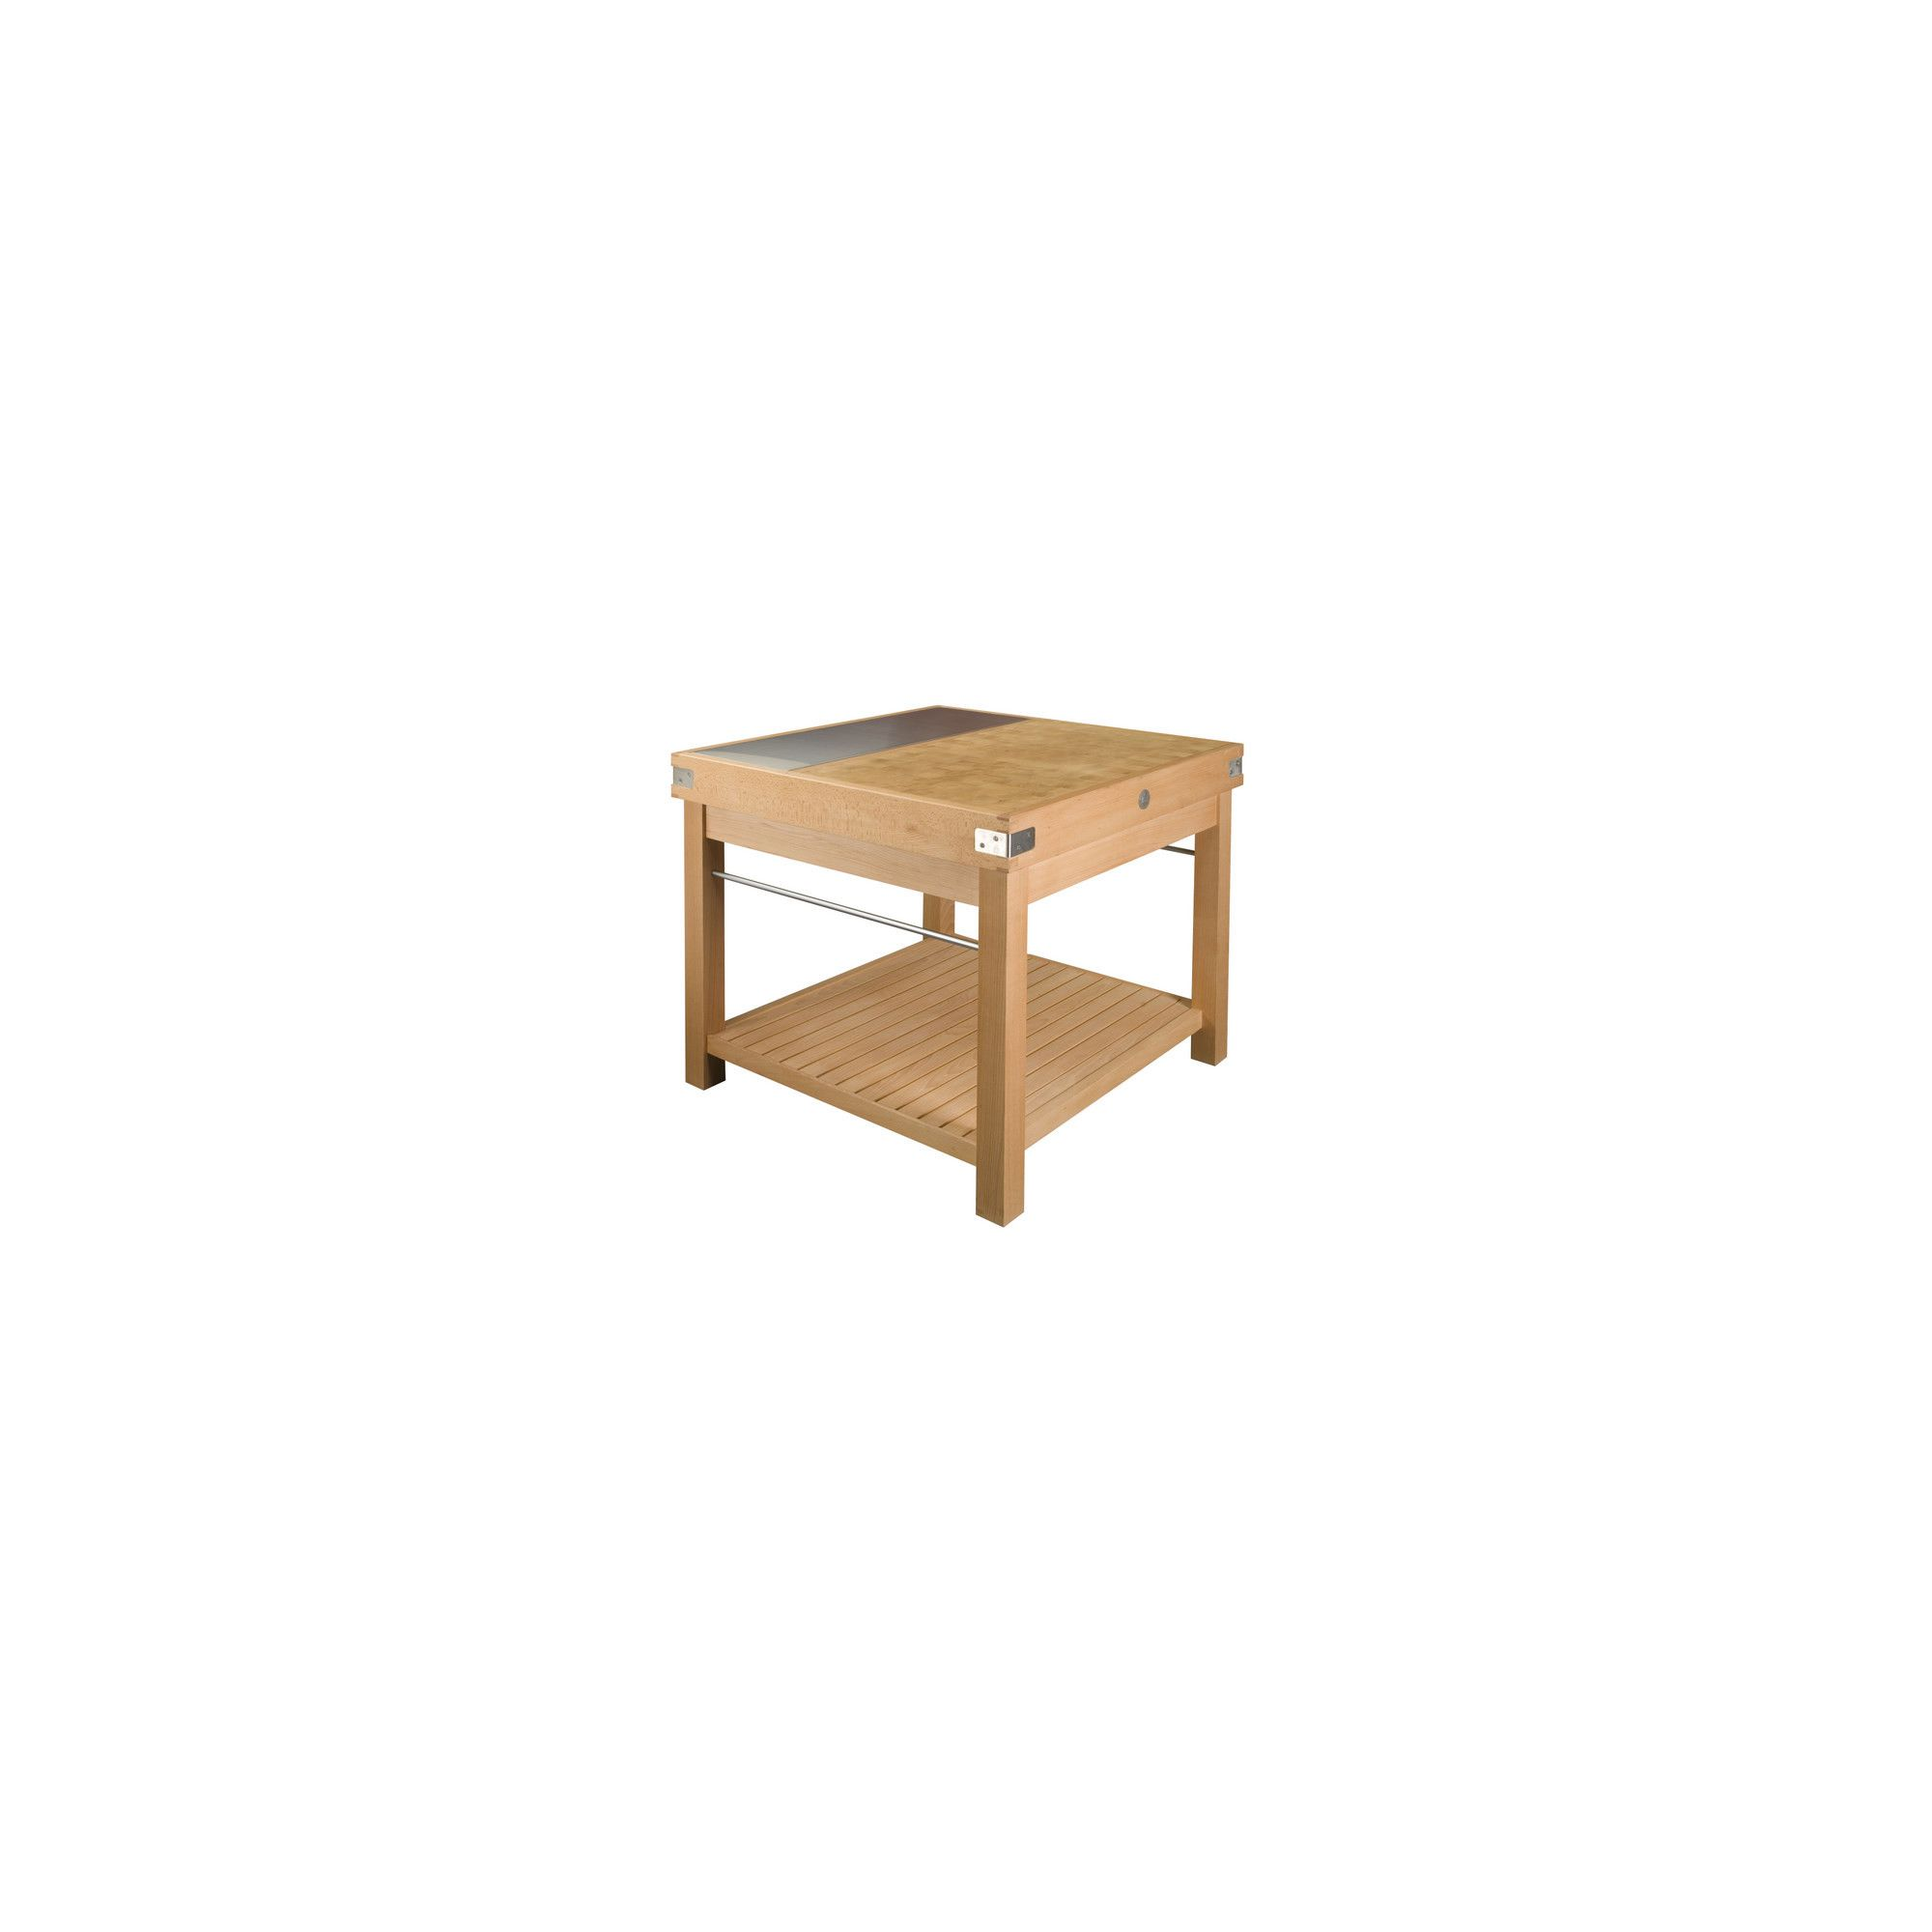 Chabret Kitchen Island Block - 90cm X 120cm X 120cm at Tesco Direct